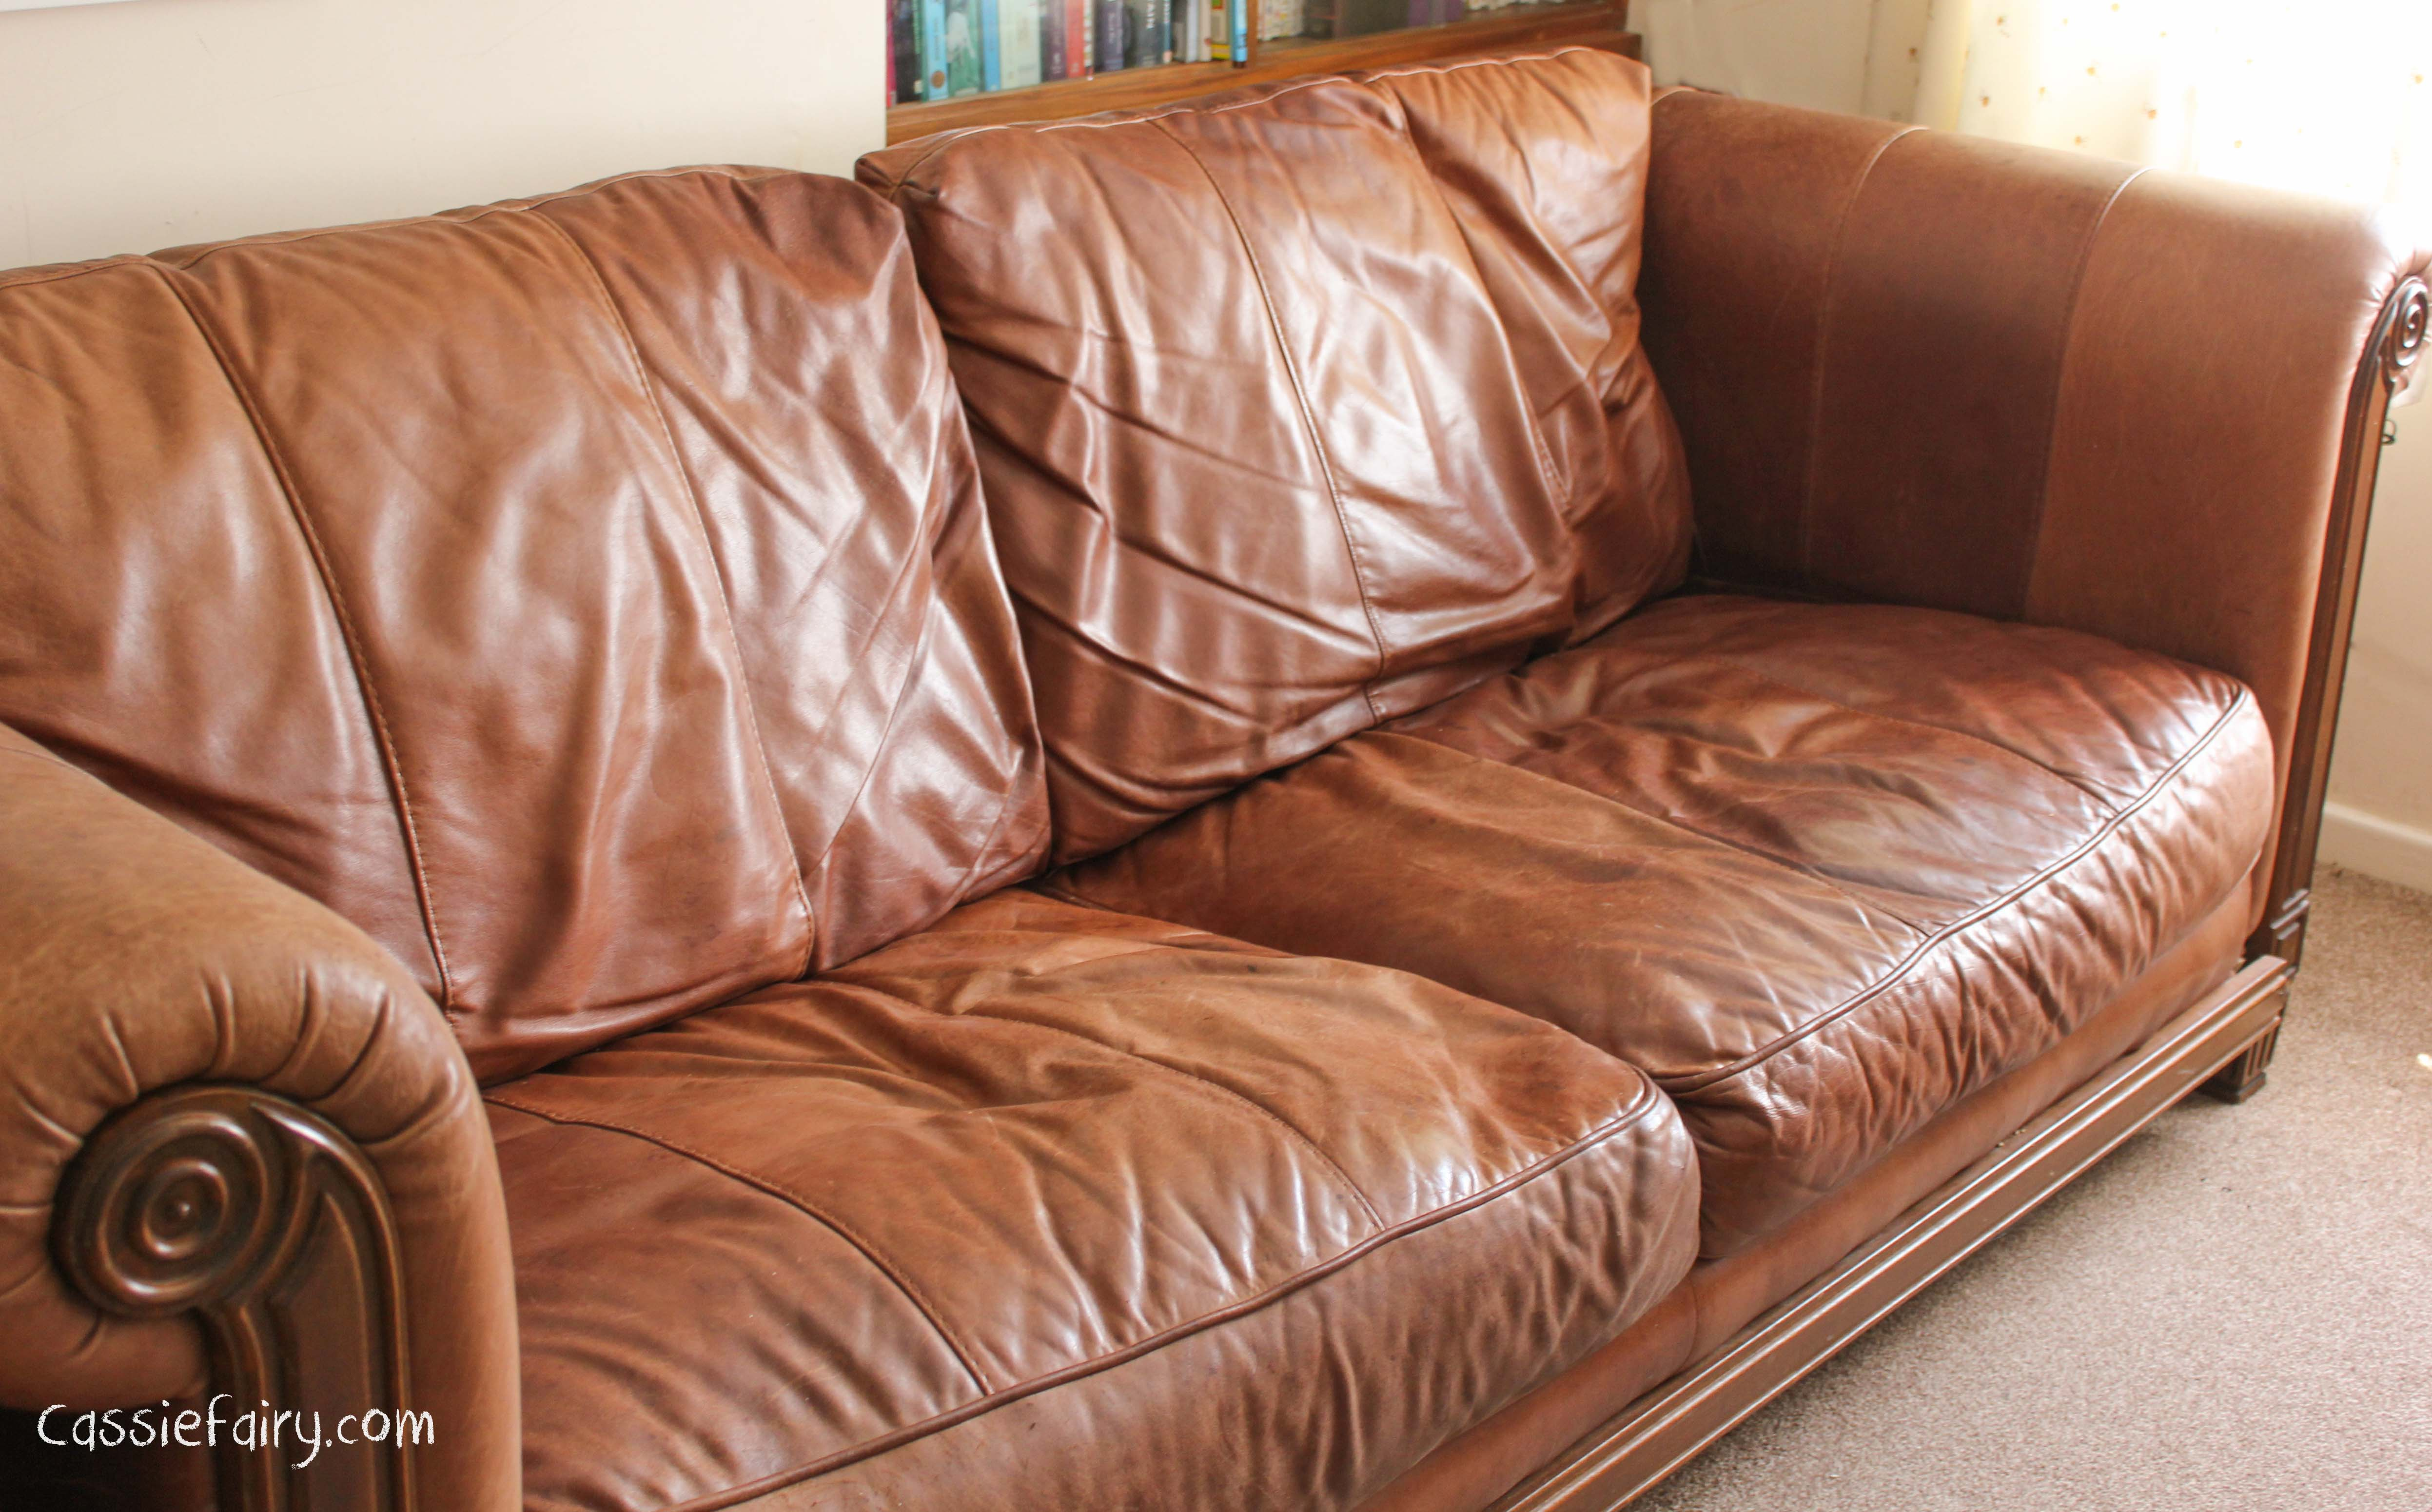 reupholster leather sofa diy suppliers manchester ideas to spruce up your old cassiefairy my